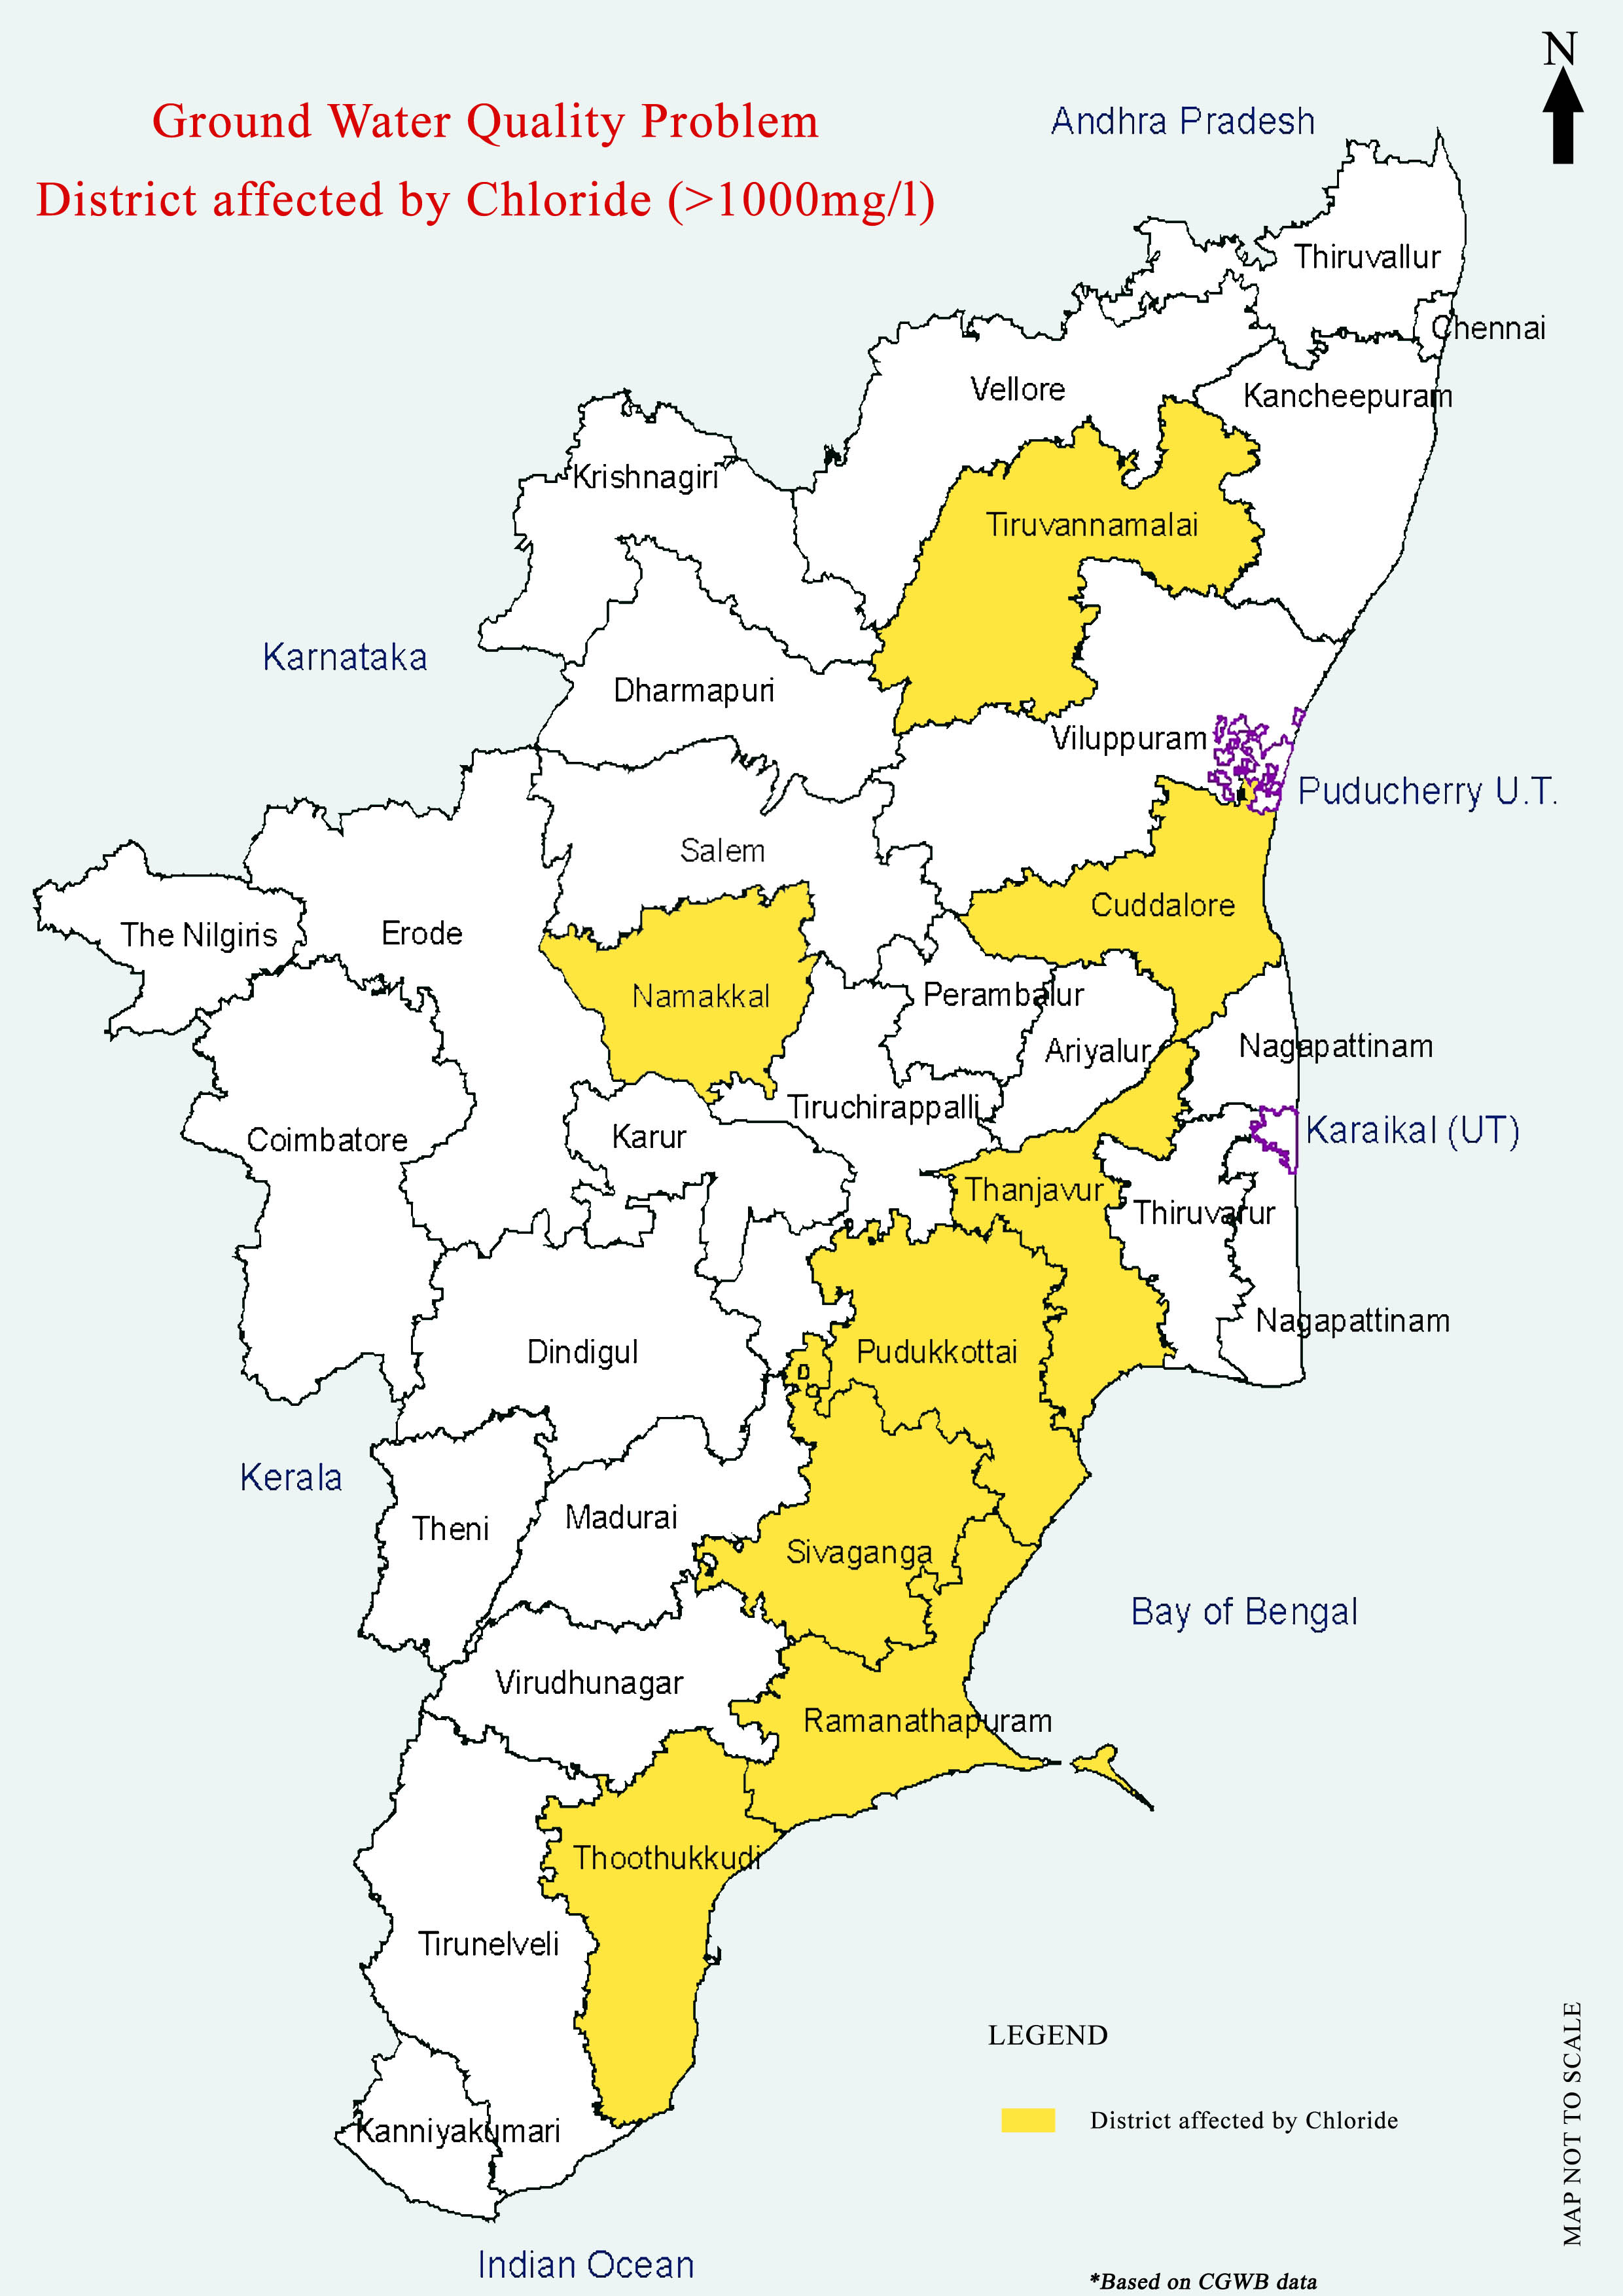 Maps on groundwater quality tamil nadu a collection by chloridetamil naduenvis gumiabroncs Images